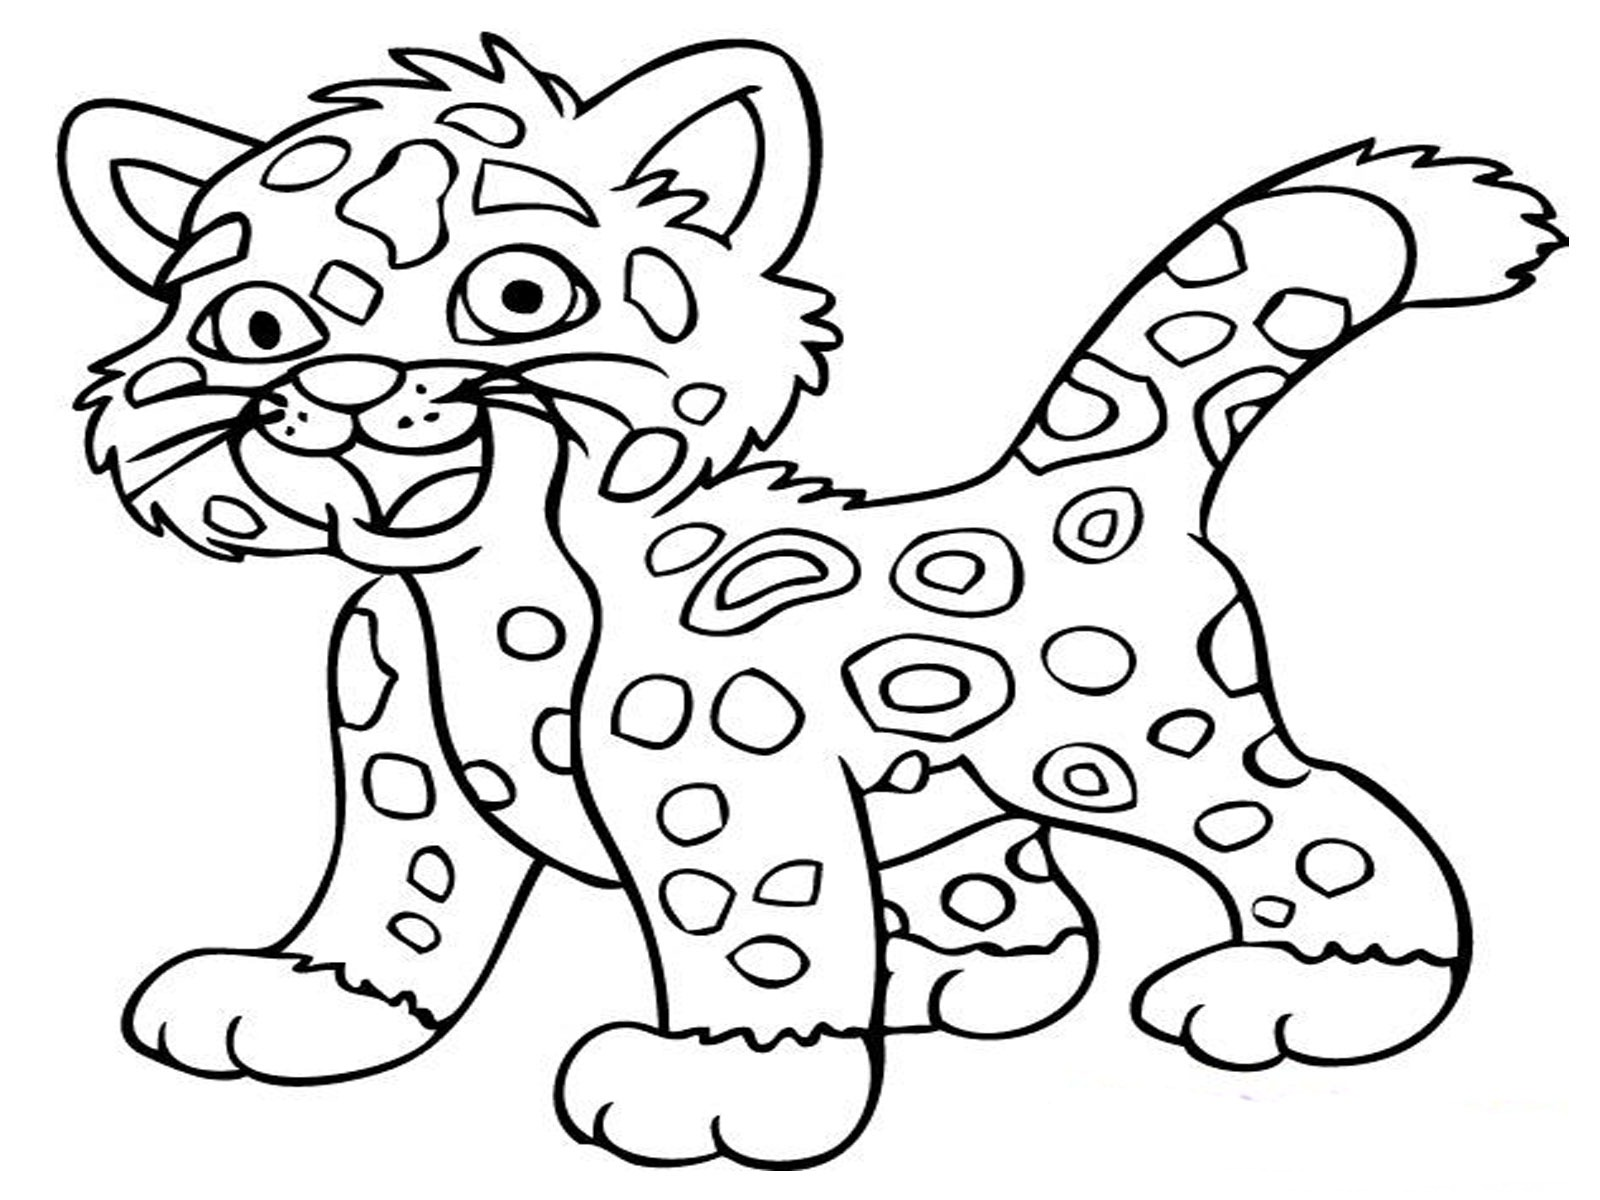 Easy Jaguar Drawing at GetDrawings.com   Free for personal use Easy ...